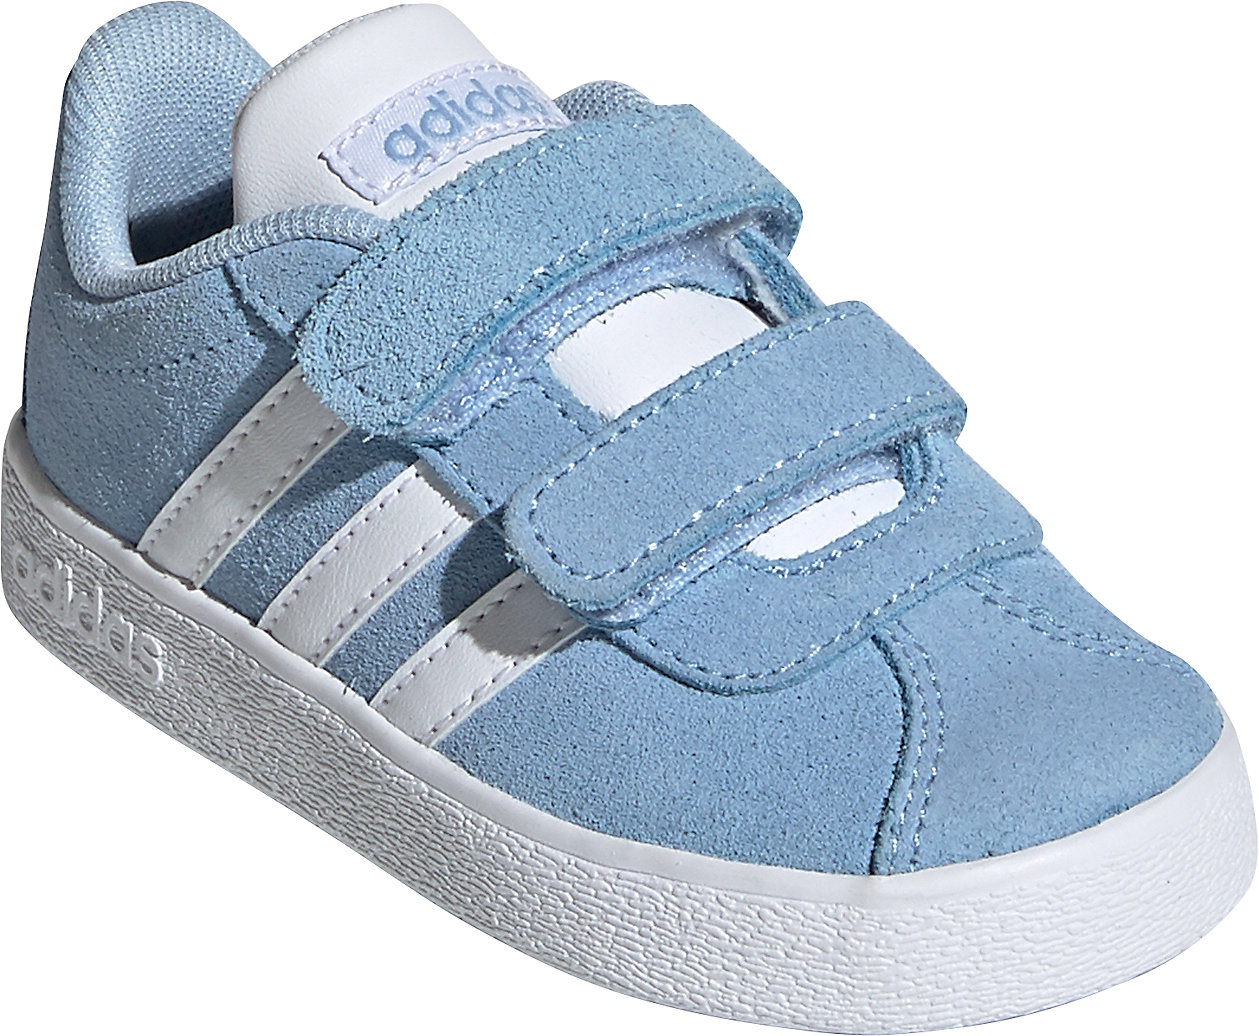 adidas Sport Inspired Baby Sneakers Low VL COURT 2.0 CMF I